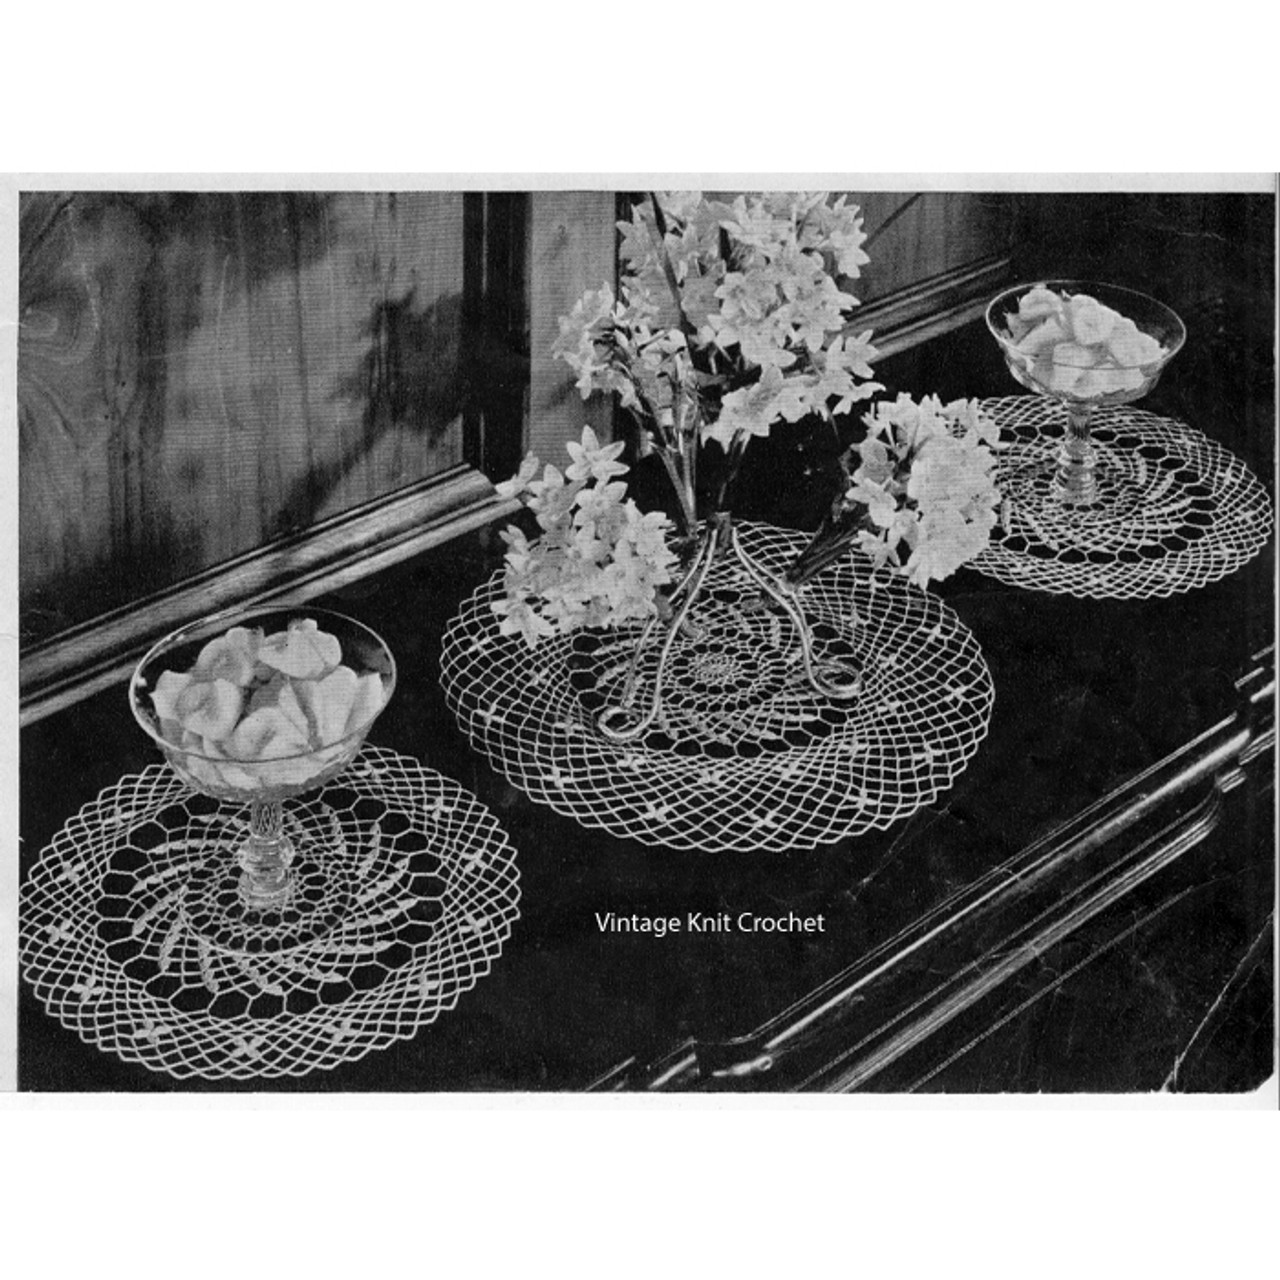 Crochet Spiderweb Lace Doily Pattern in two sizes